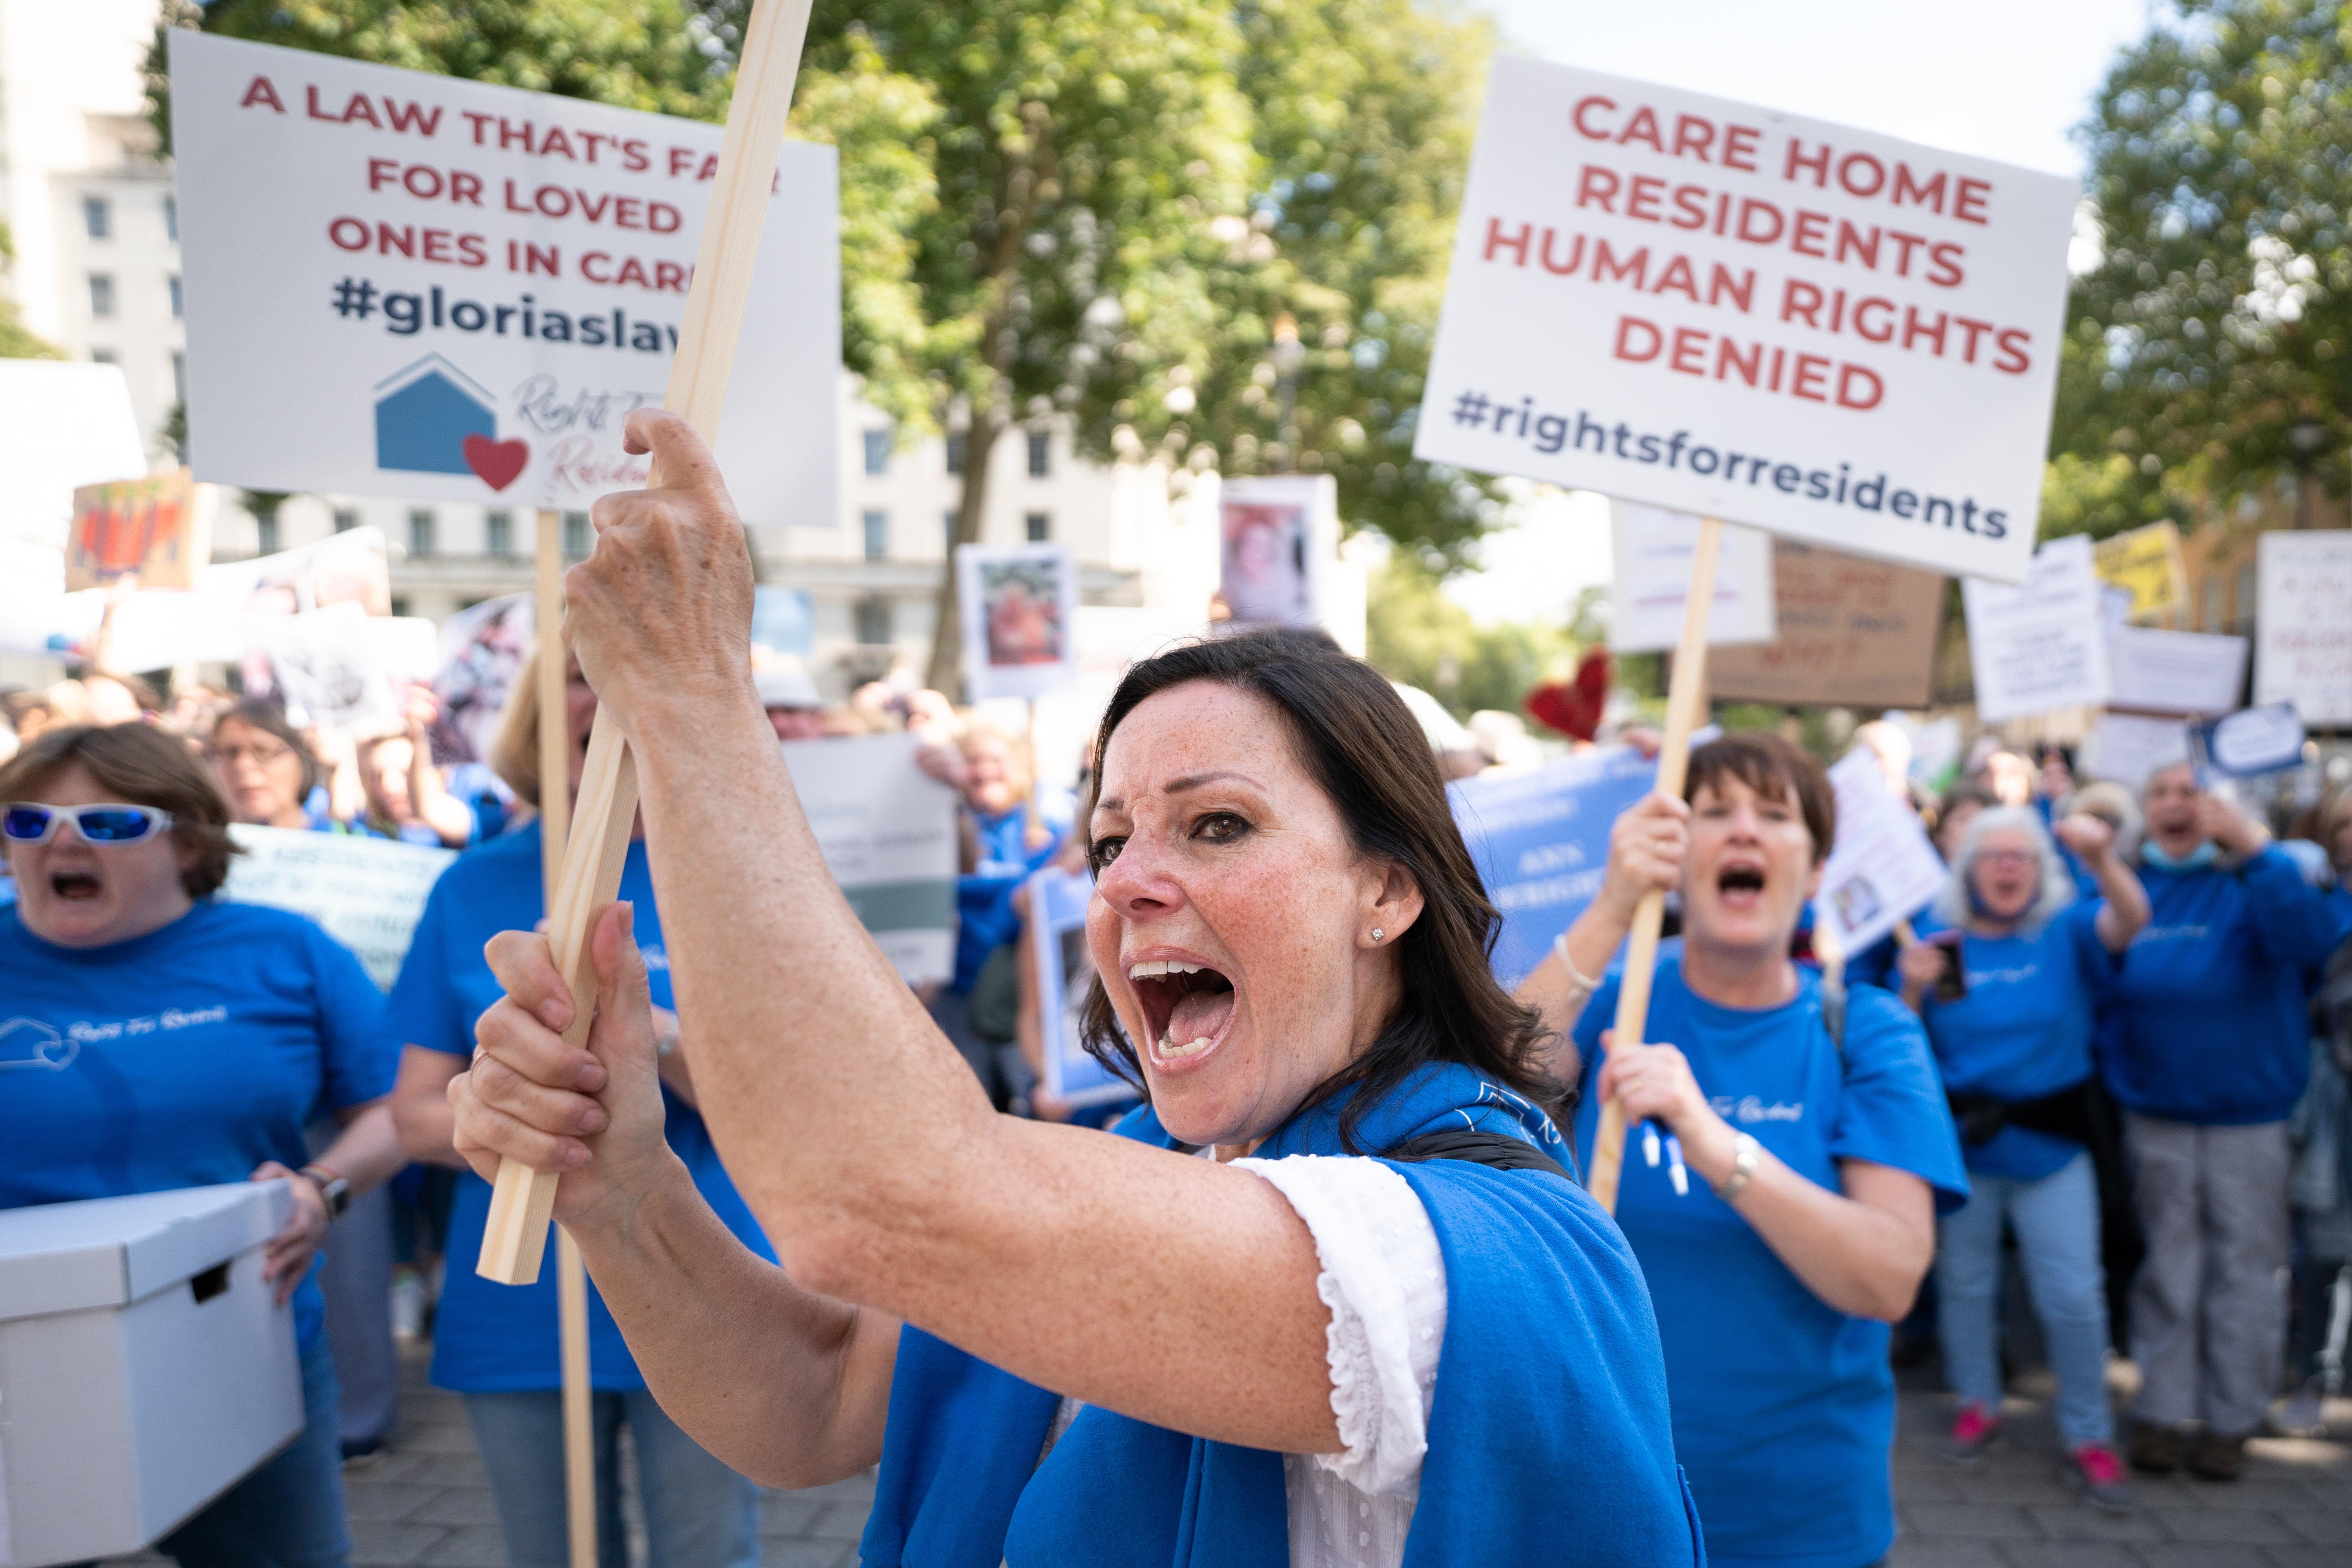 <p>Ruthie Henshall joins members of Rights For Residents to hand in a petition at 10 Downing Street, London. to protest about the inequality, discrimination and abuse of human rights of those in care. Picture date: Thursday September 16, 2021.</p>